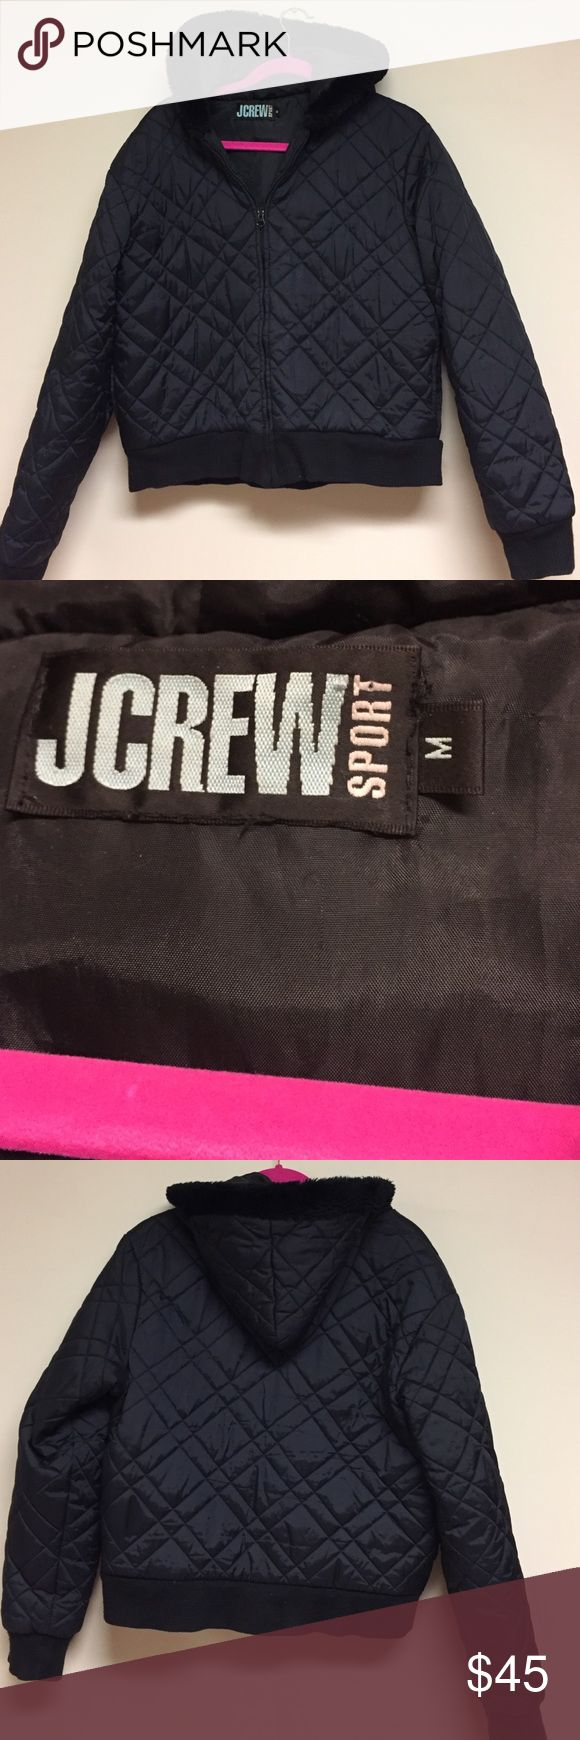 J Crew sport coat size M Black quilted J Crew coat, zipper front, fully lined, hidden inside zipper pocket. Two outside pockets, slight wear to waist band. Under arm to under arm 21.5 inches    Shoulder to hem 22 inches.  Sleeve length 24.5 inches J. Crew Jackets & Coats Puffers